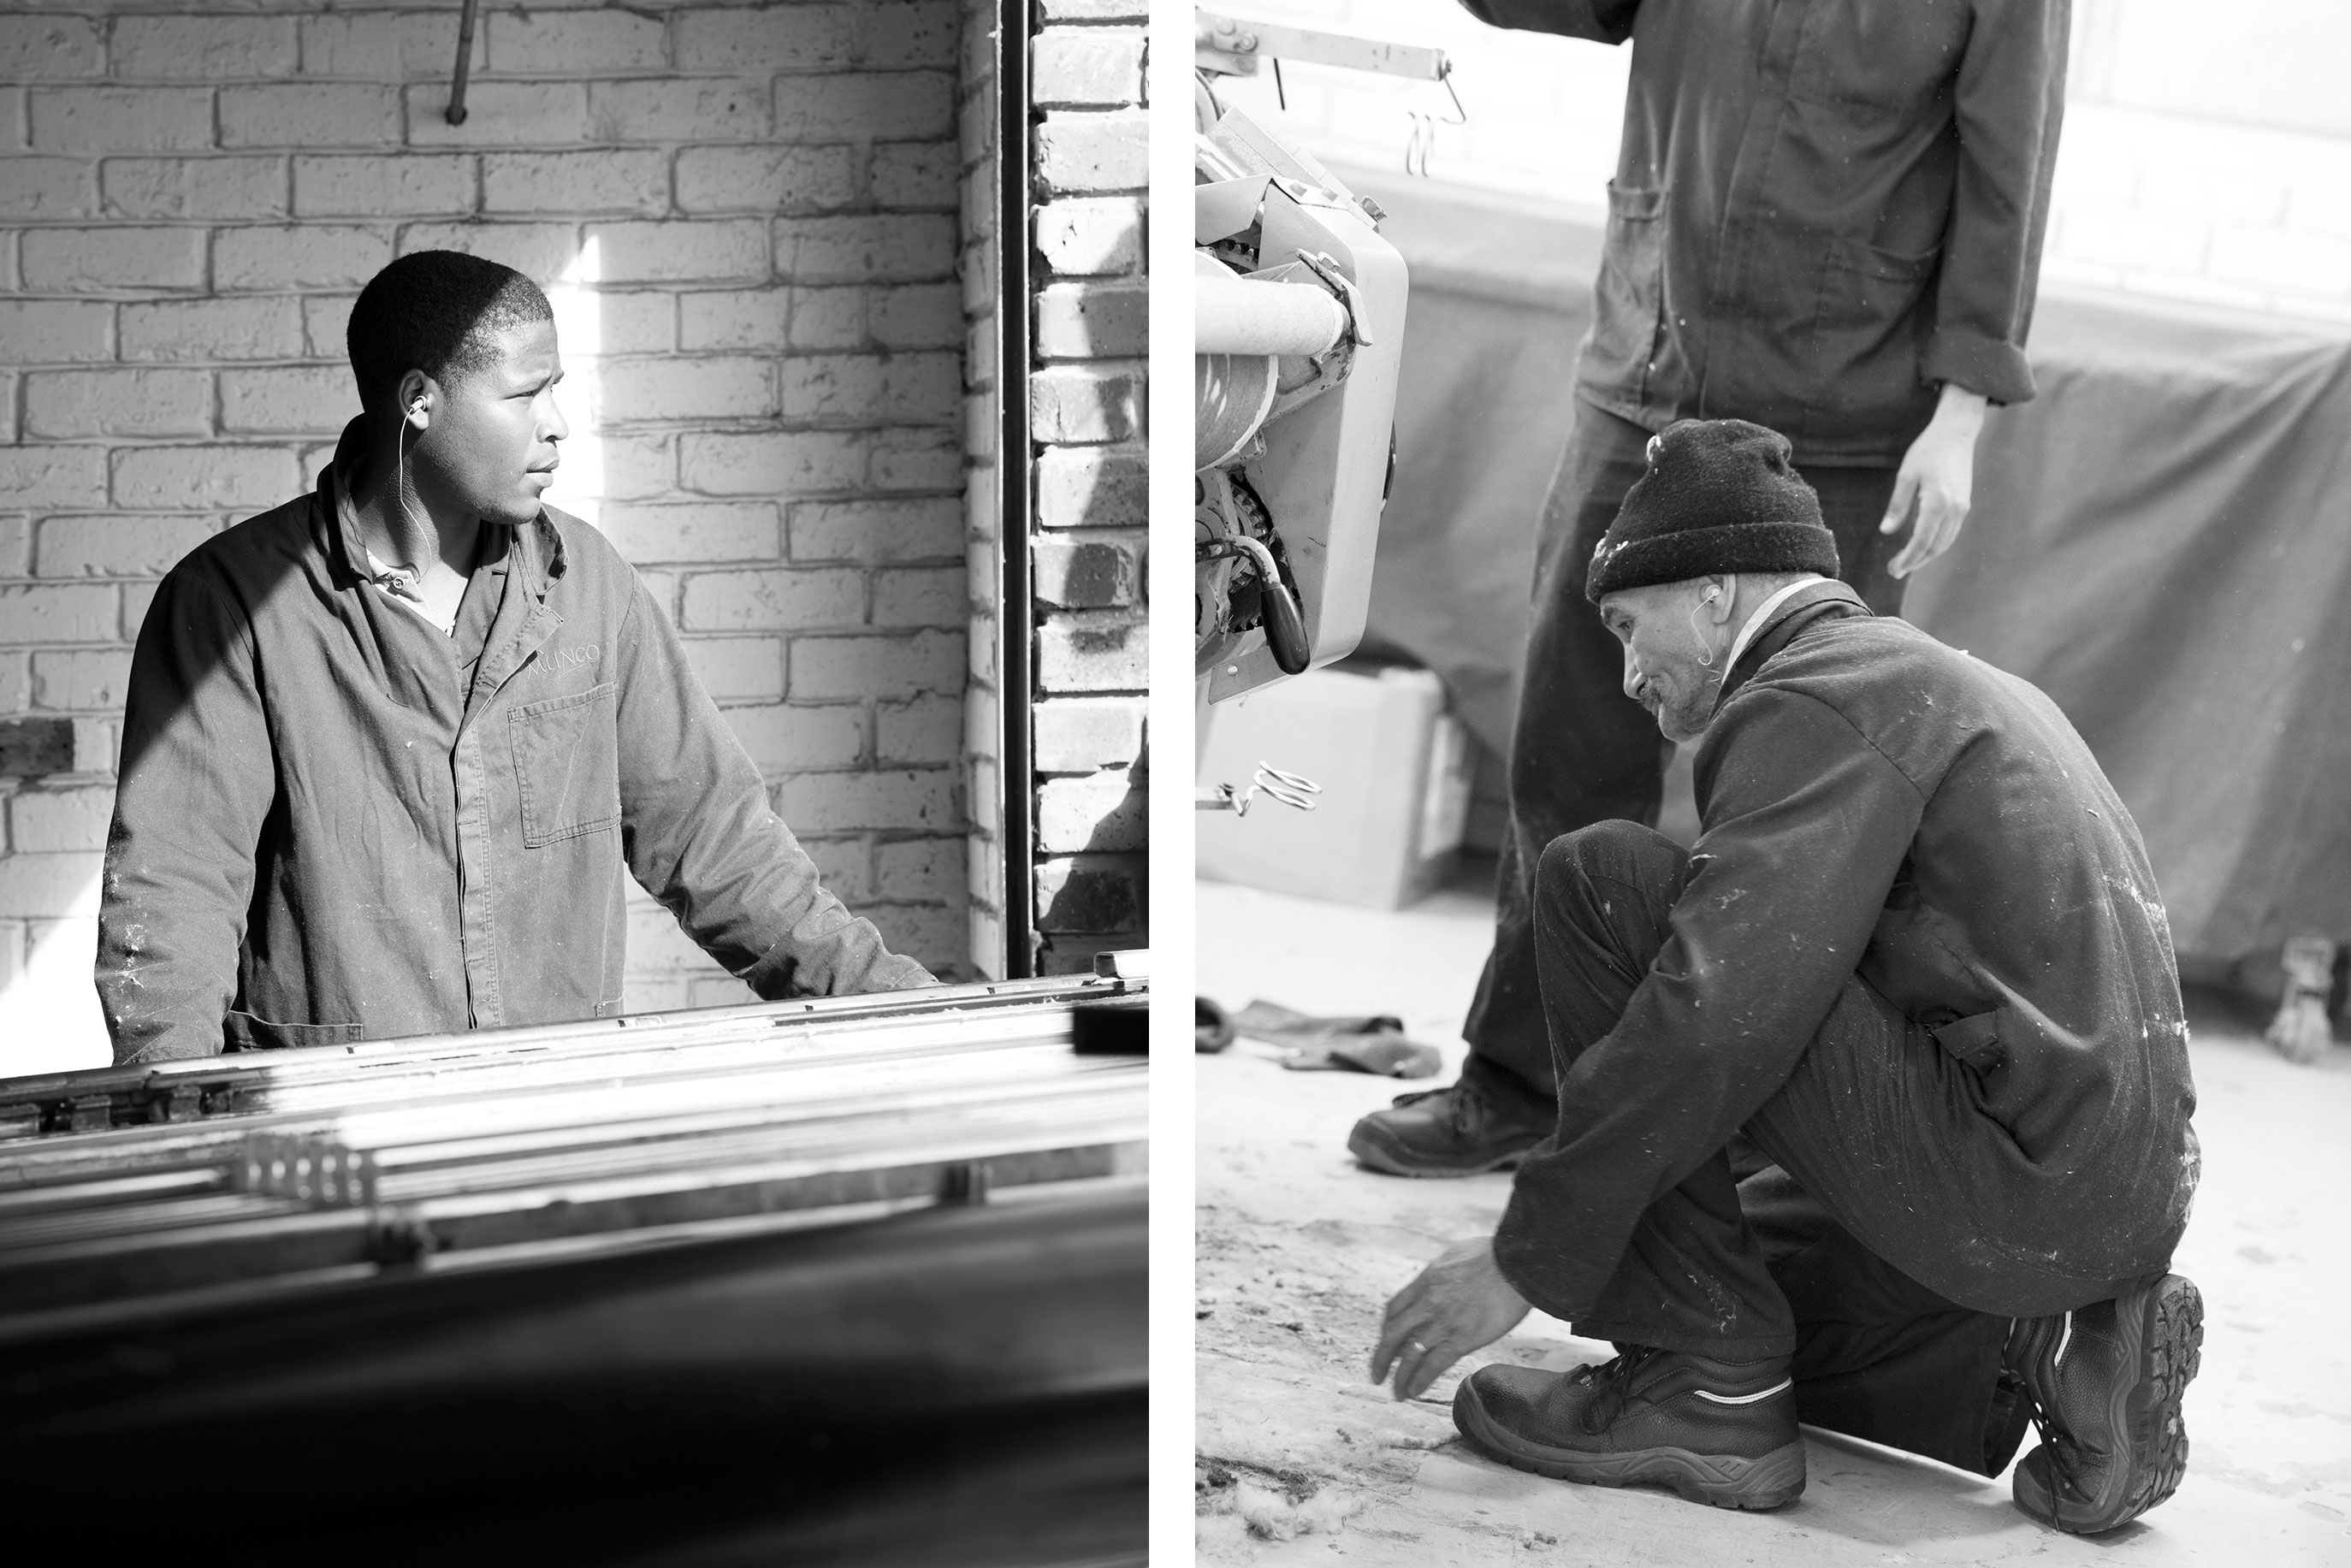 Nathan (left) our new weaving apprentice and Roderick (right) the loom tuner who started working for us earlier this year after Colibri , the well known toweling manufacturer, closed their doors.